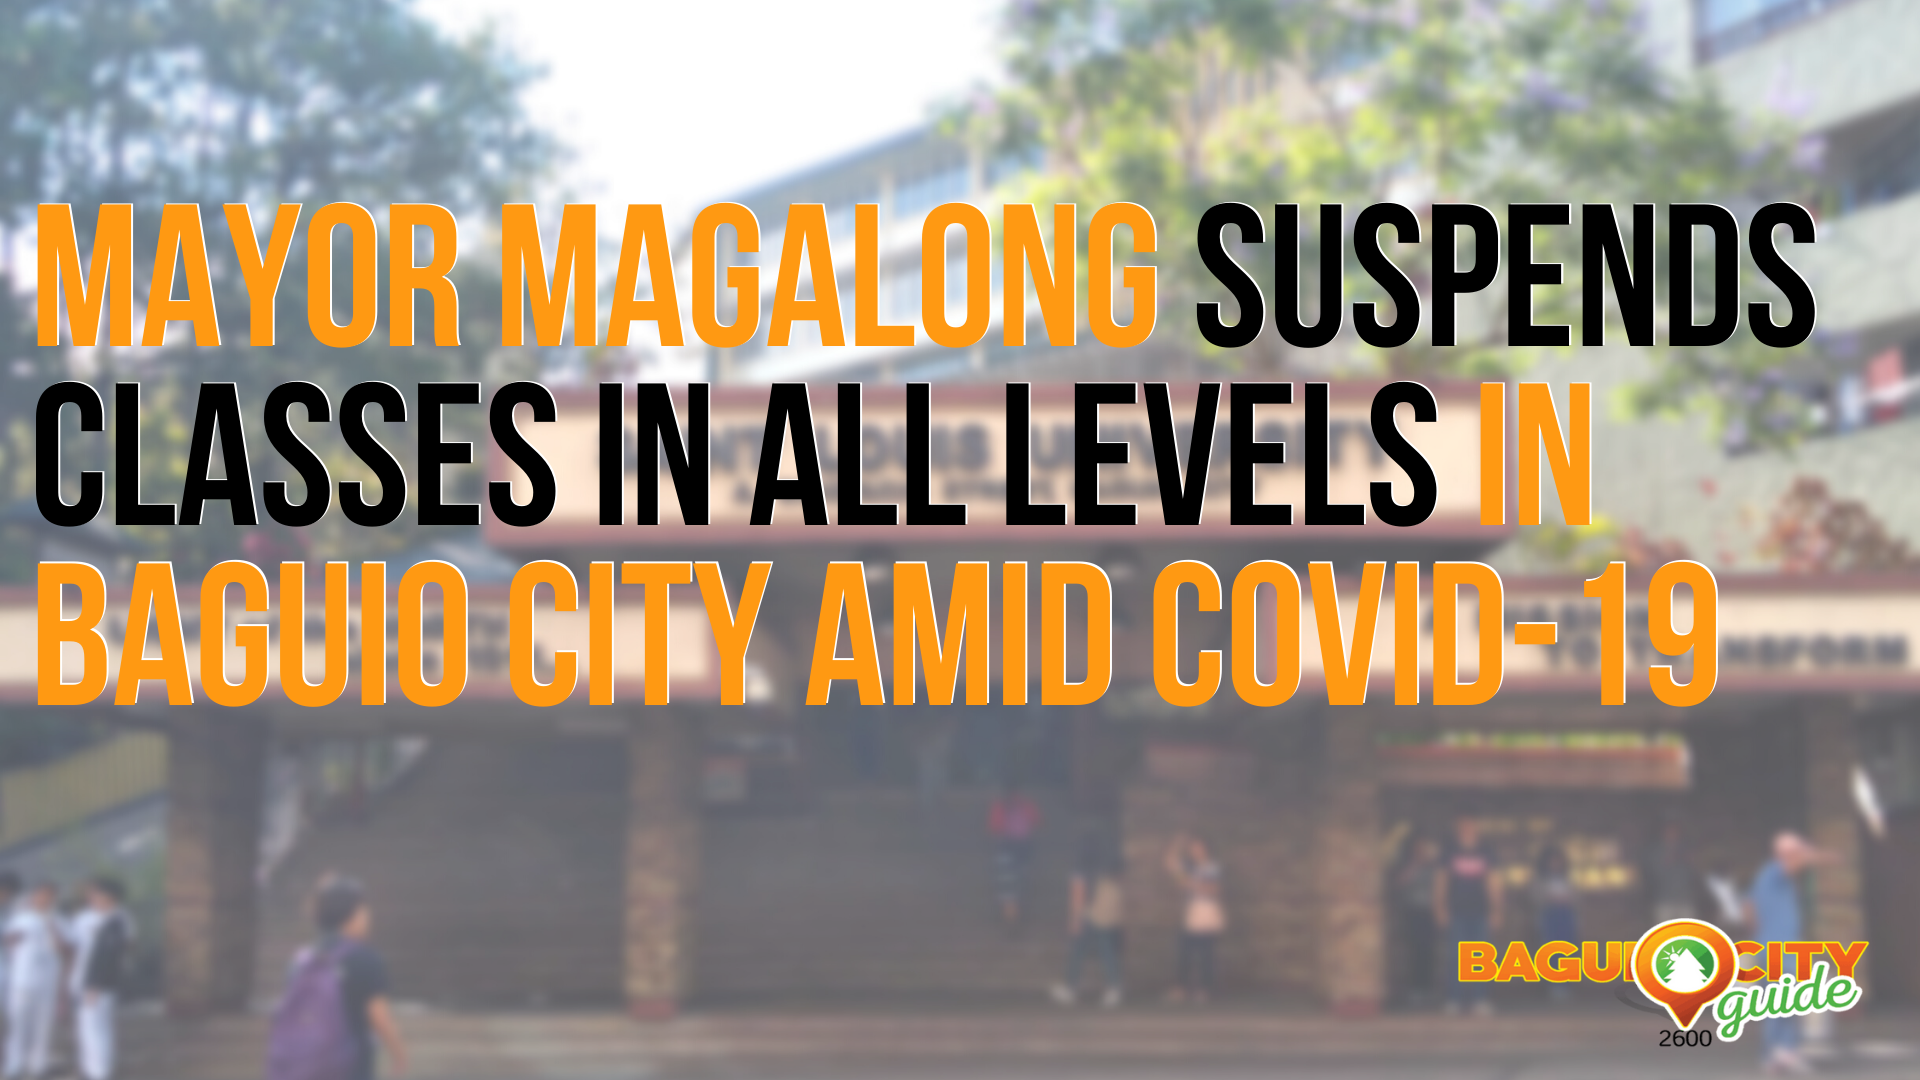 Mayor suspends classes in all levels in Baguio City from